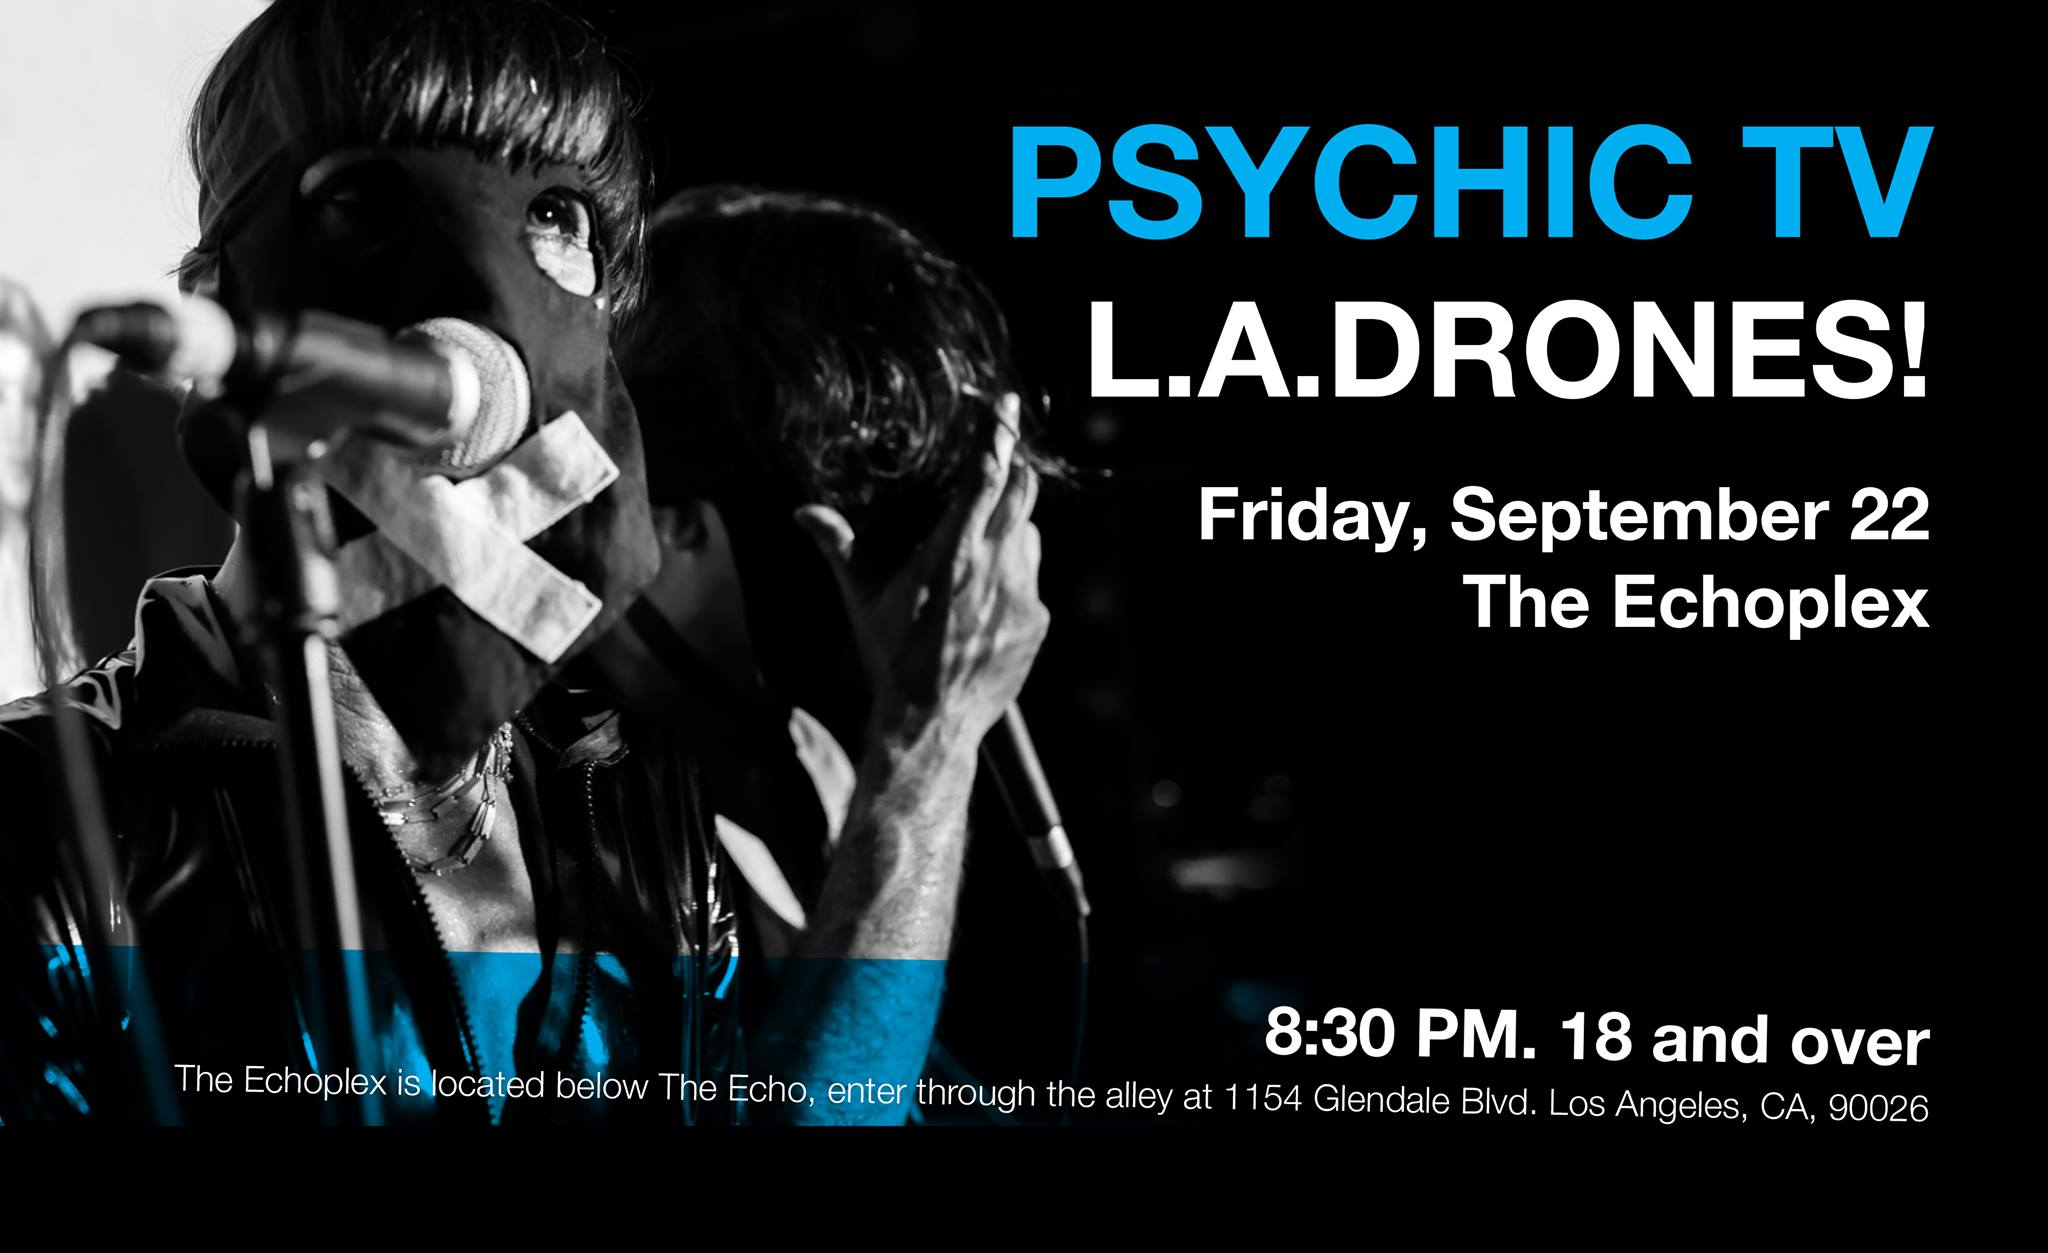 L.A. Drones to Perform w/ Psychic TV @ The Echoplex Sep. 22nd!